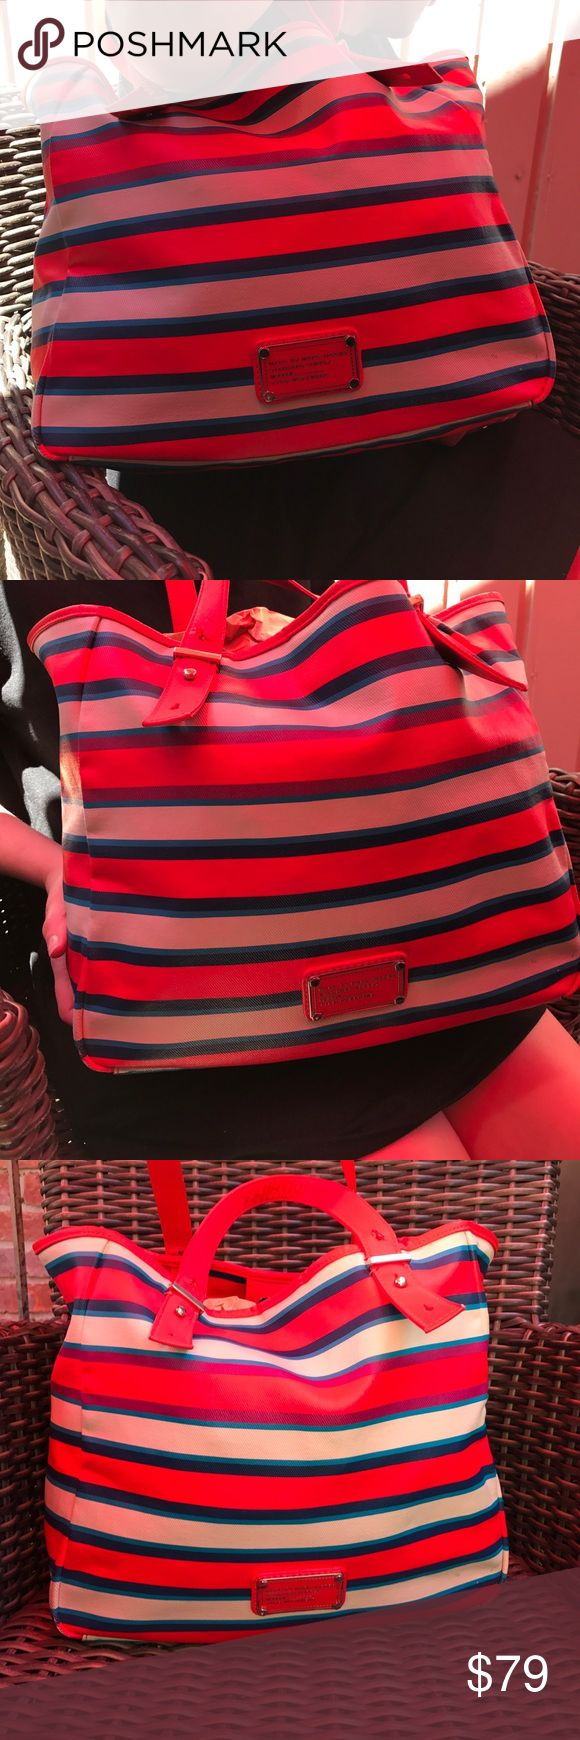 ‼️FLASH SALE 1 HOUR‼️Marc Jacobs Multicolor Tote Fun, colorful summer Marc Jacobs Canvas Tote bag with adjustable straps and logo on front. Very spacious with inside side pocket. Great for the beach or around town! Will dress up any outfit!! Marc Jacobs Bags Totes